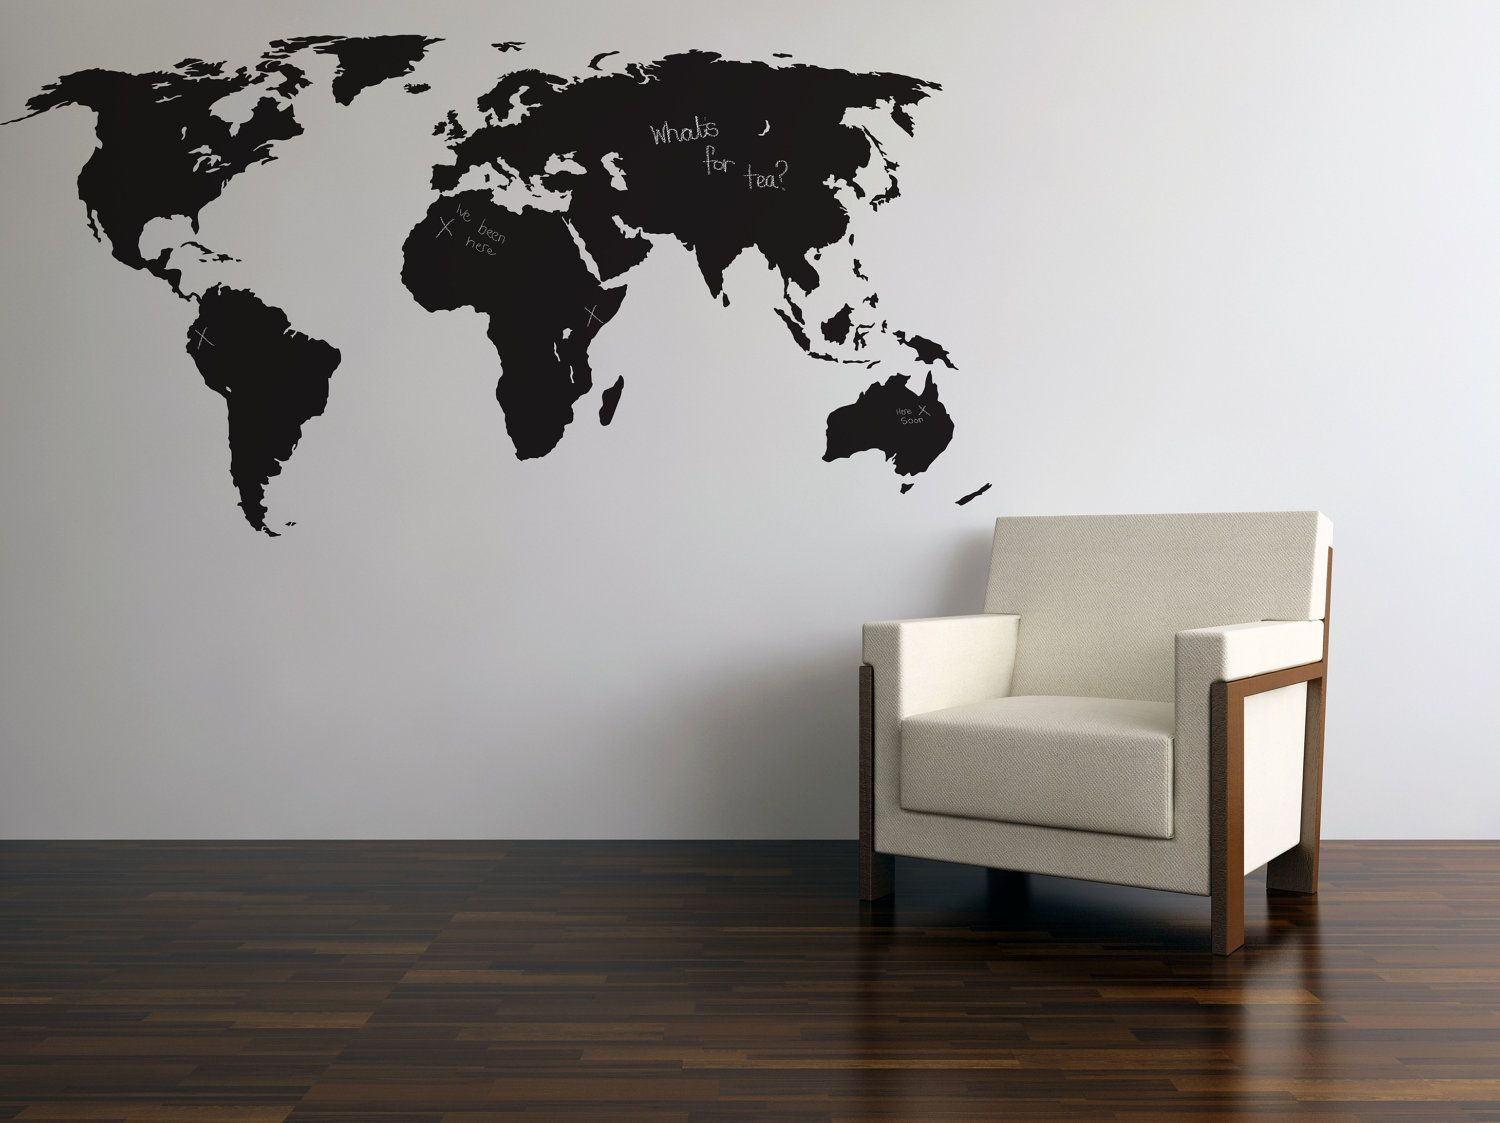 Chalkboard world map silhouette wall sticker with chalk pinterest blackboardchalkboard world map wall stickers 3499 via etsy gumiabroncs Image collections